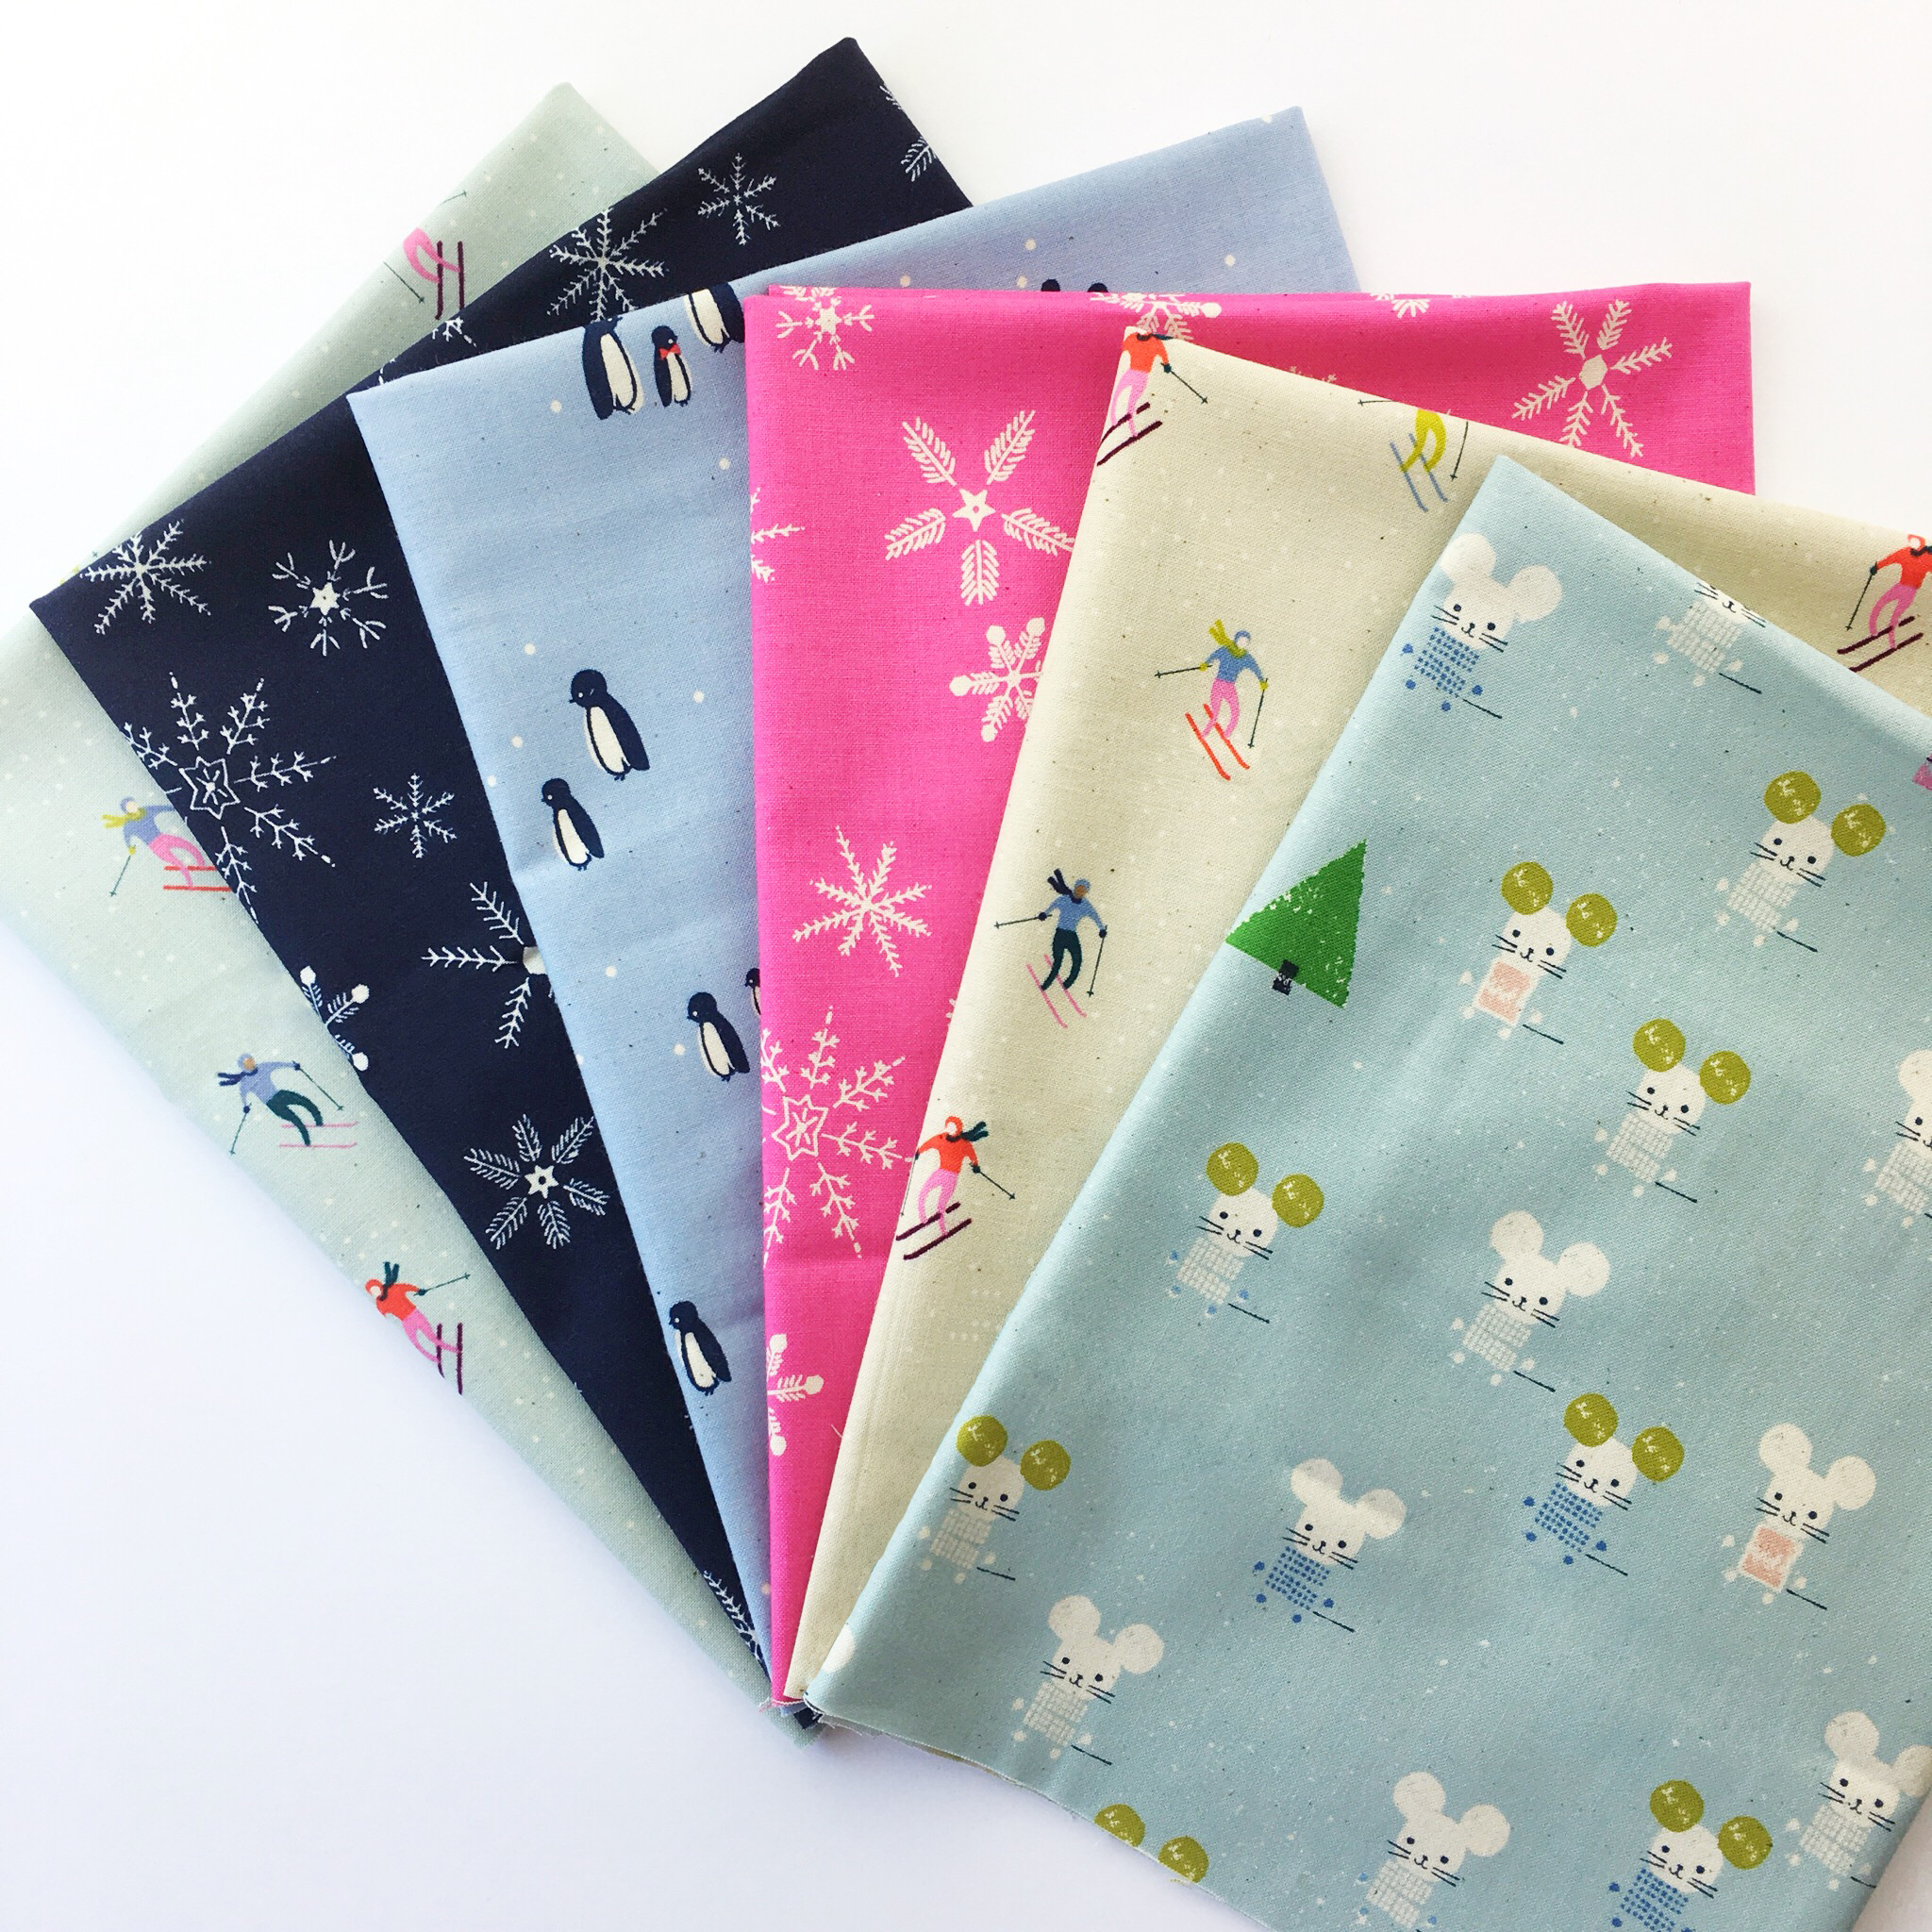 Frost Fat Quarter Bundle. 6 100% cotton fat quarters from the Frost collection by Cotton + Steel